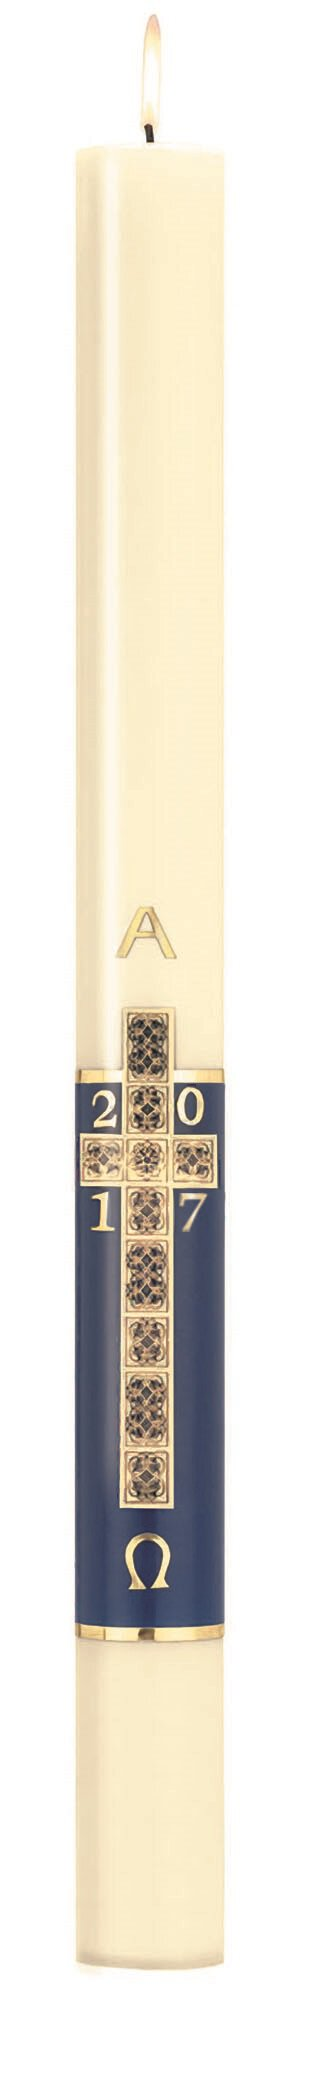 No 6 Holy Cross Paschal Candle